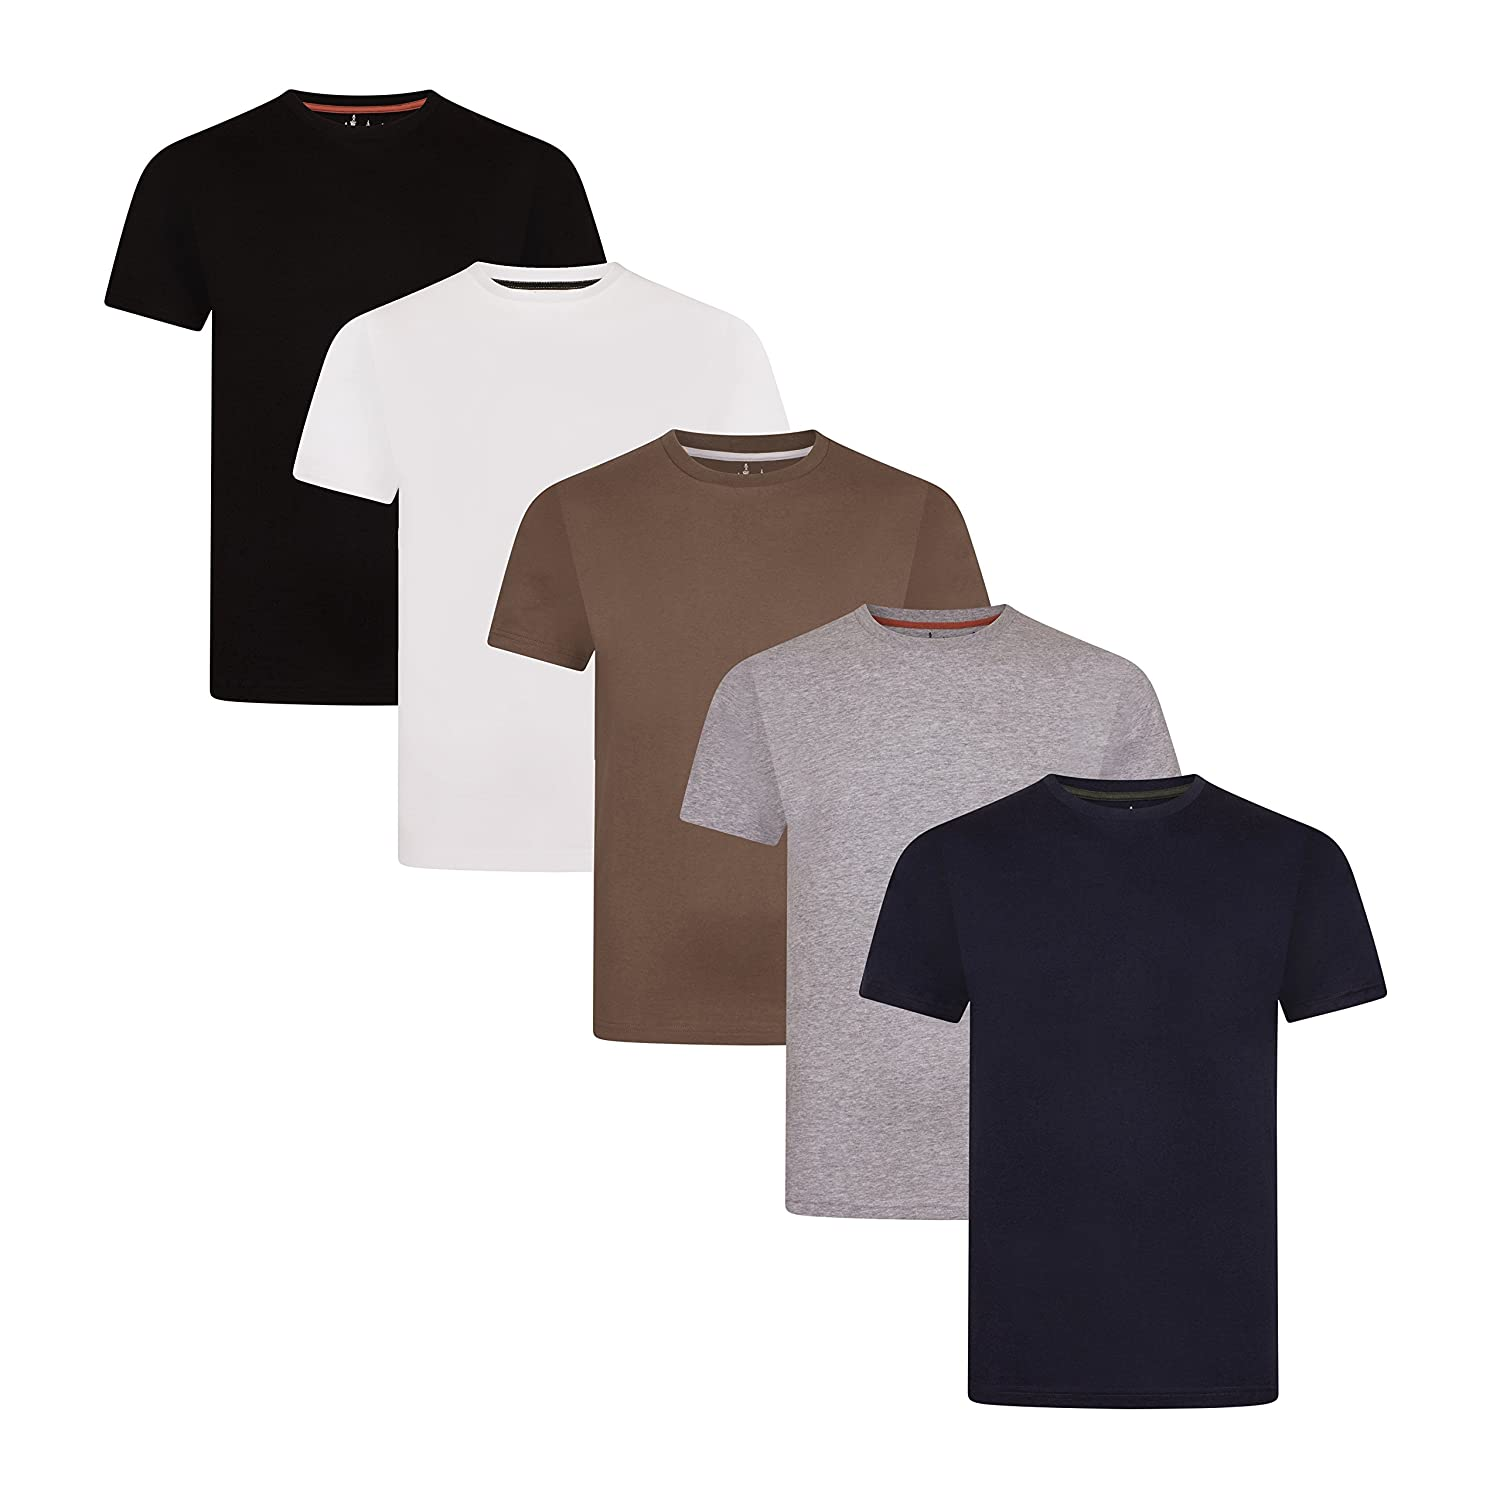 FM London 5-Pack Men's Plain T-Shirt with HyFresh Odour Protection Technology